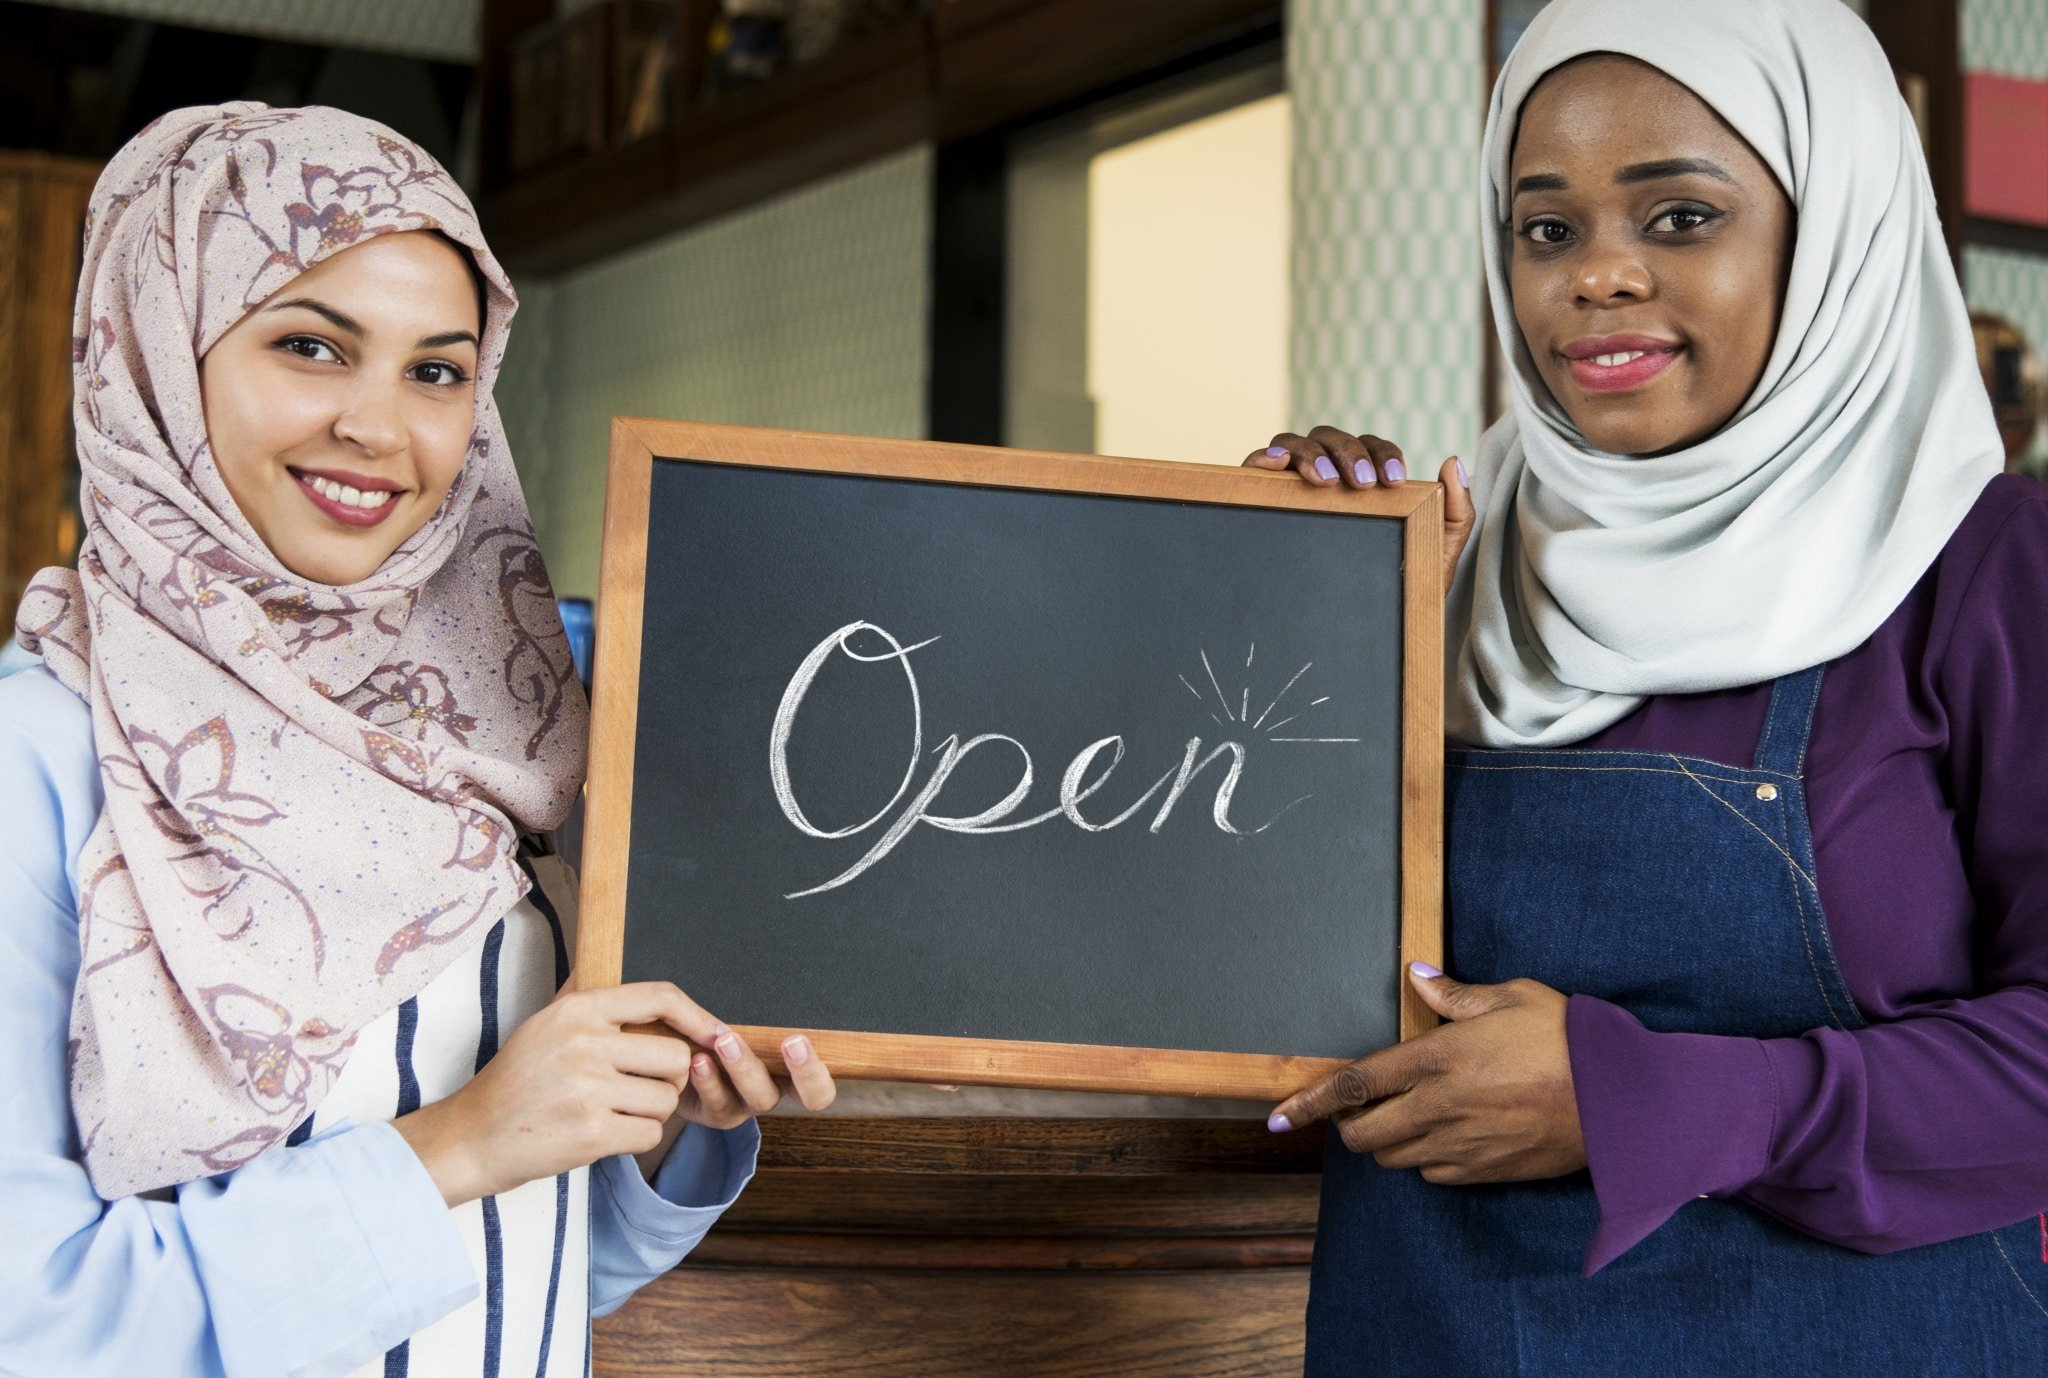 IWD-islamic-women-small-business-partnership-WXT7E5R-scaled.jpg